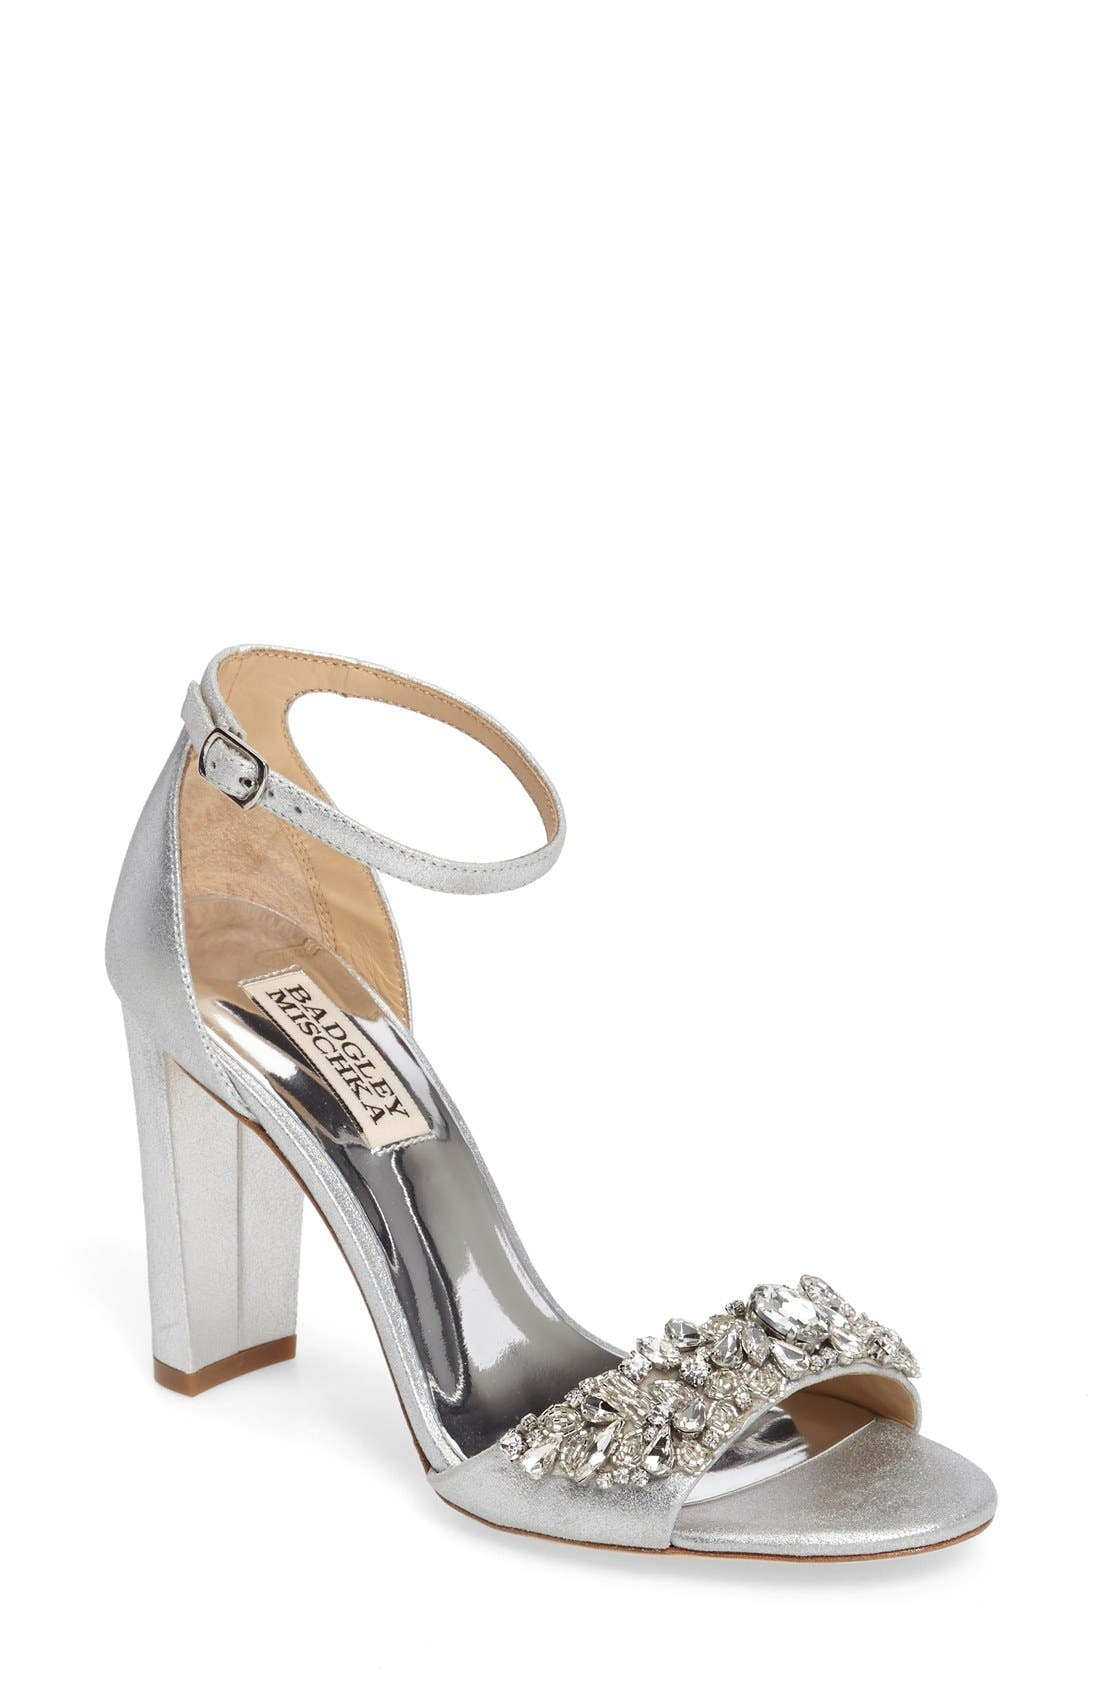 Badgley Mischka Barby Ankle Strap Sandal (Women)